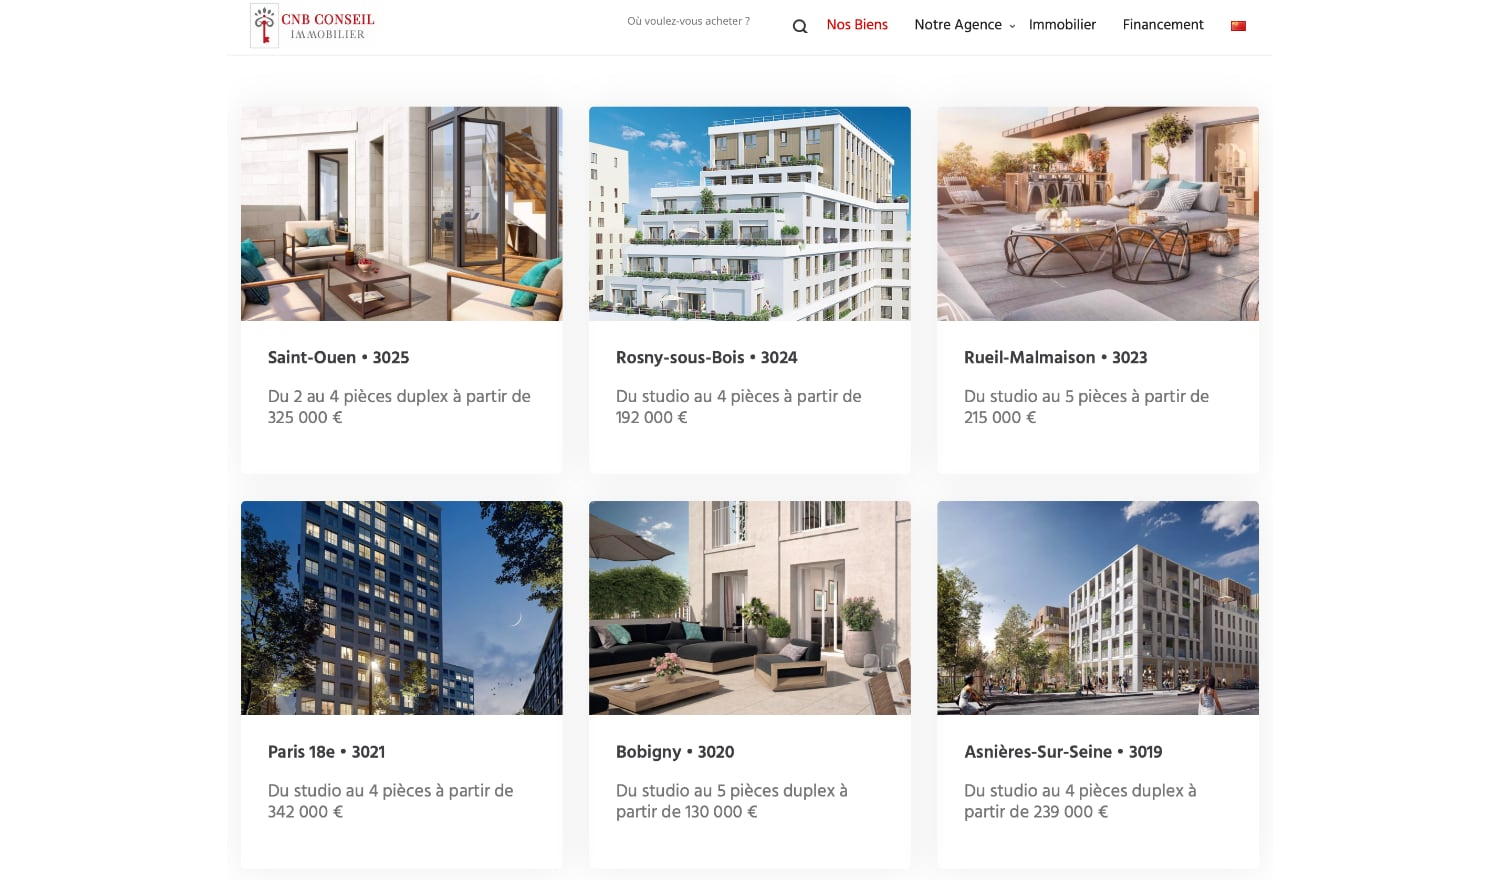 Millefeuille Agency - CNB Conseil Immobilier